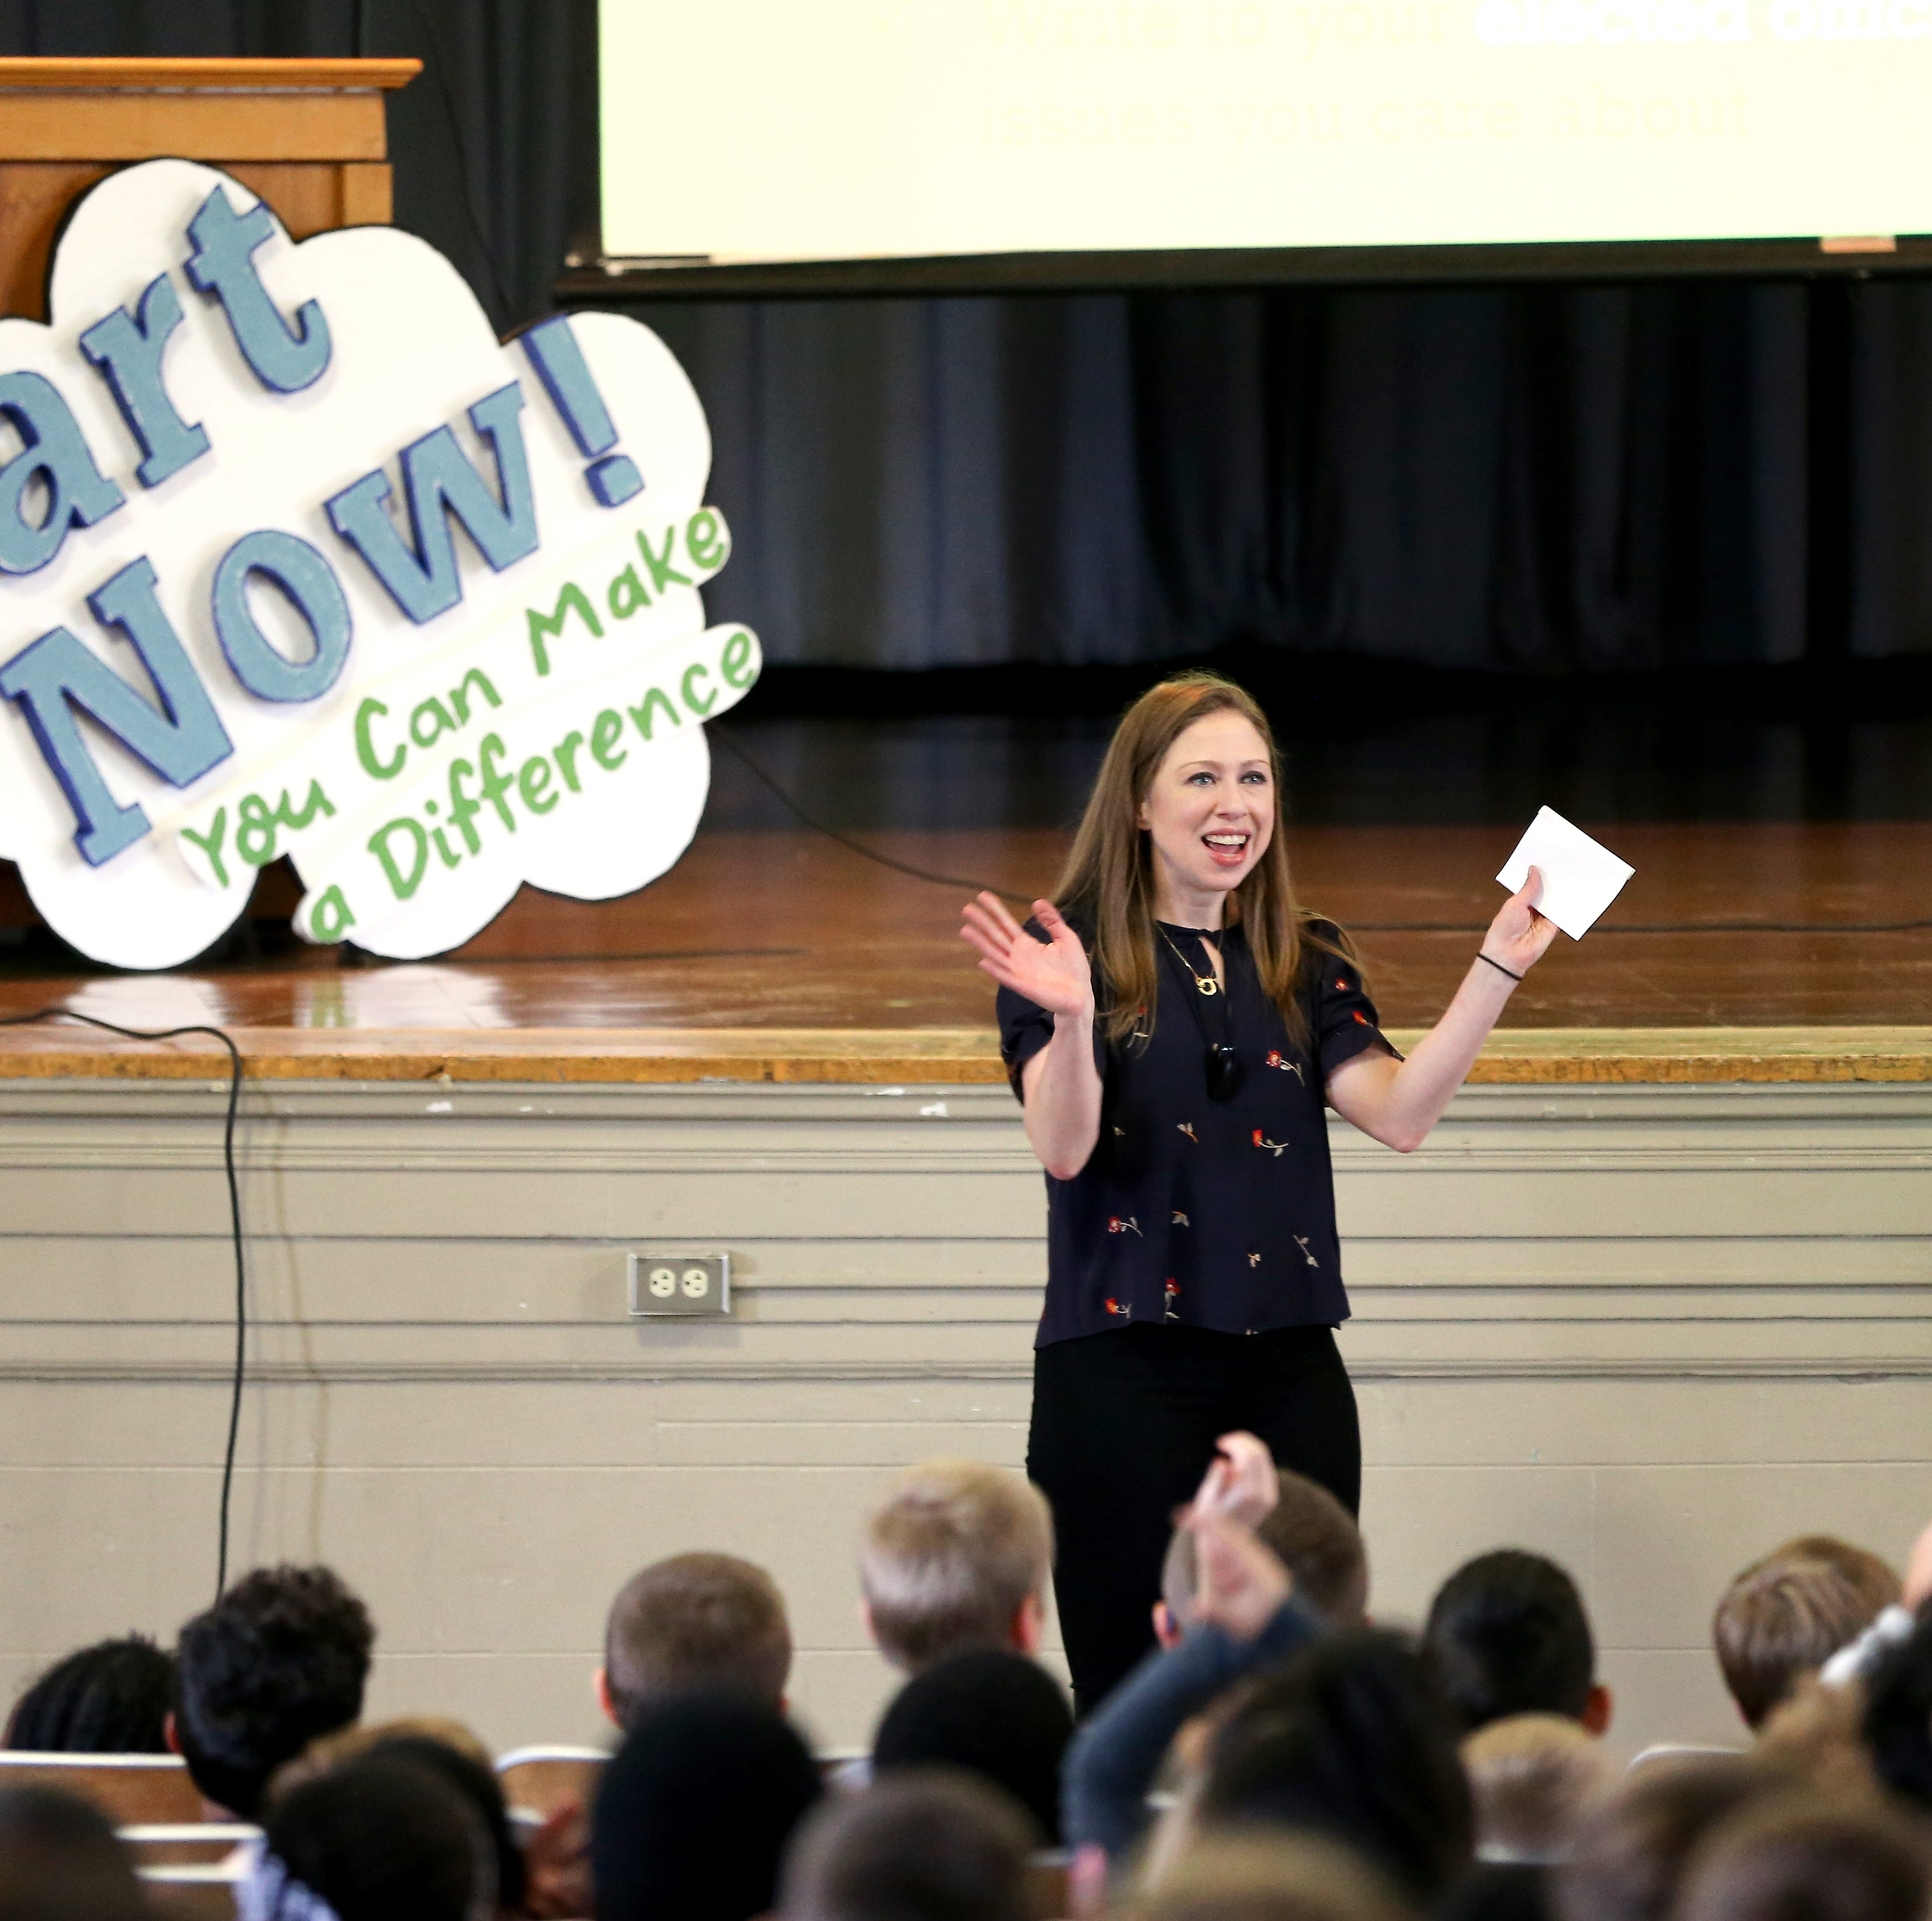 Chelsea Clinton to Colerain students: You can make a difference now